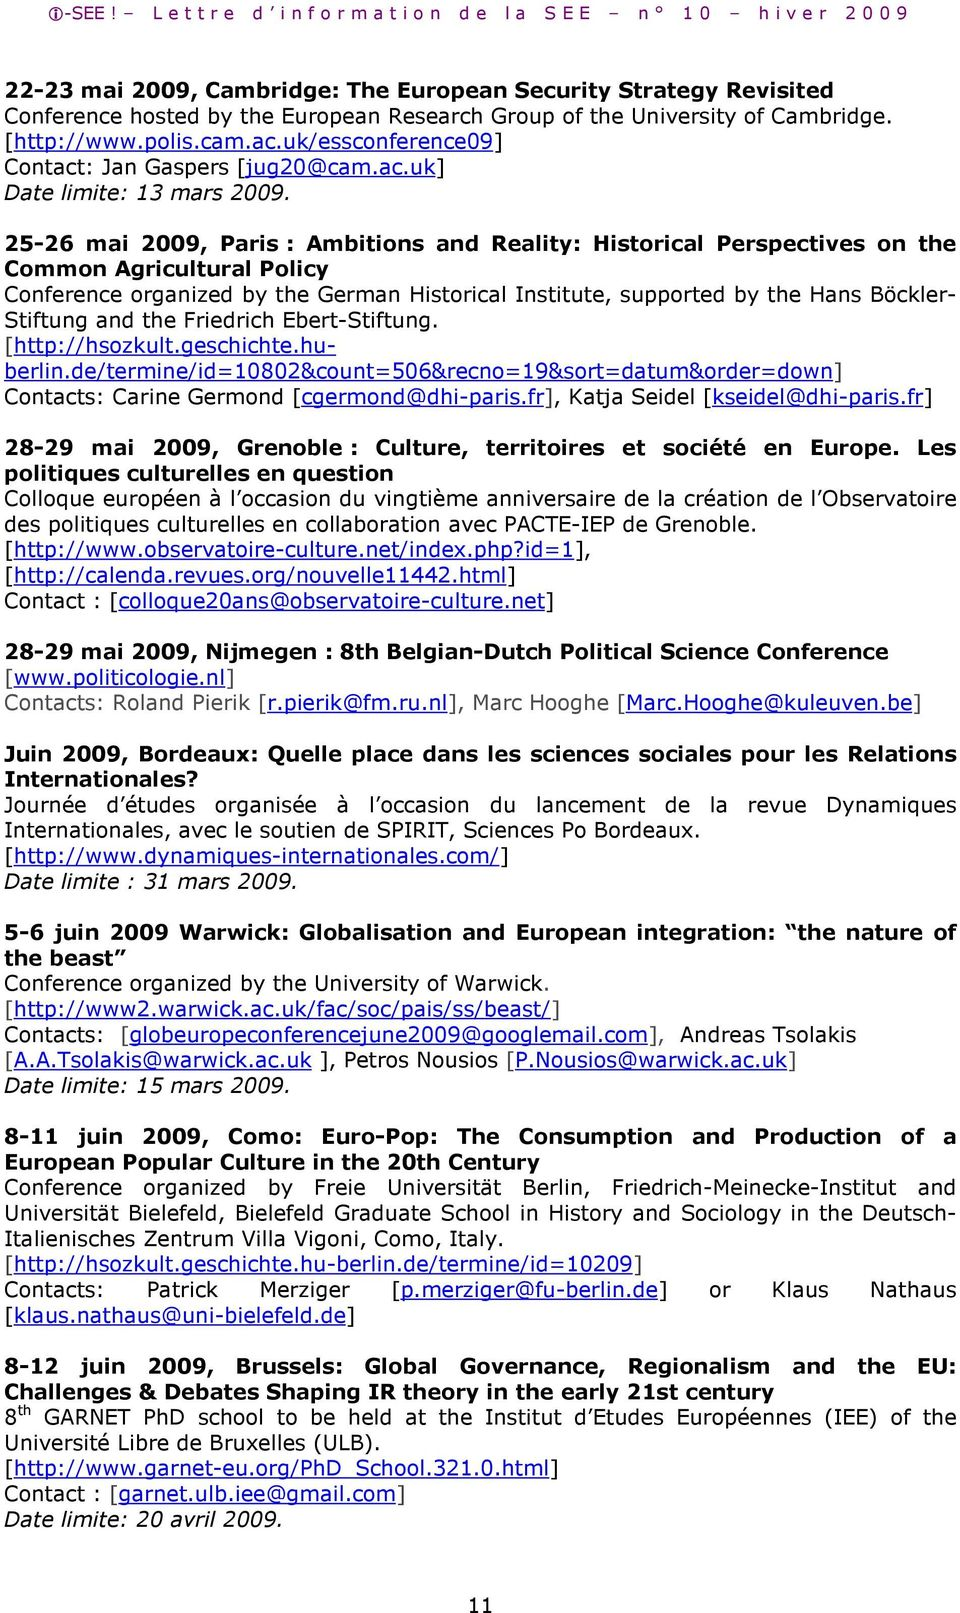 25-26 mai 2009, Paris : Ambitions and Reality: Historical Perspectives on the Common Agricultural Policy Conference organized by the German Historical Institute, supported by the Hans Böckler-